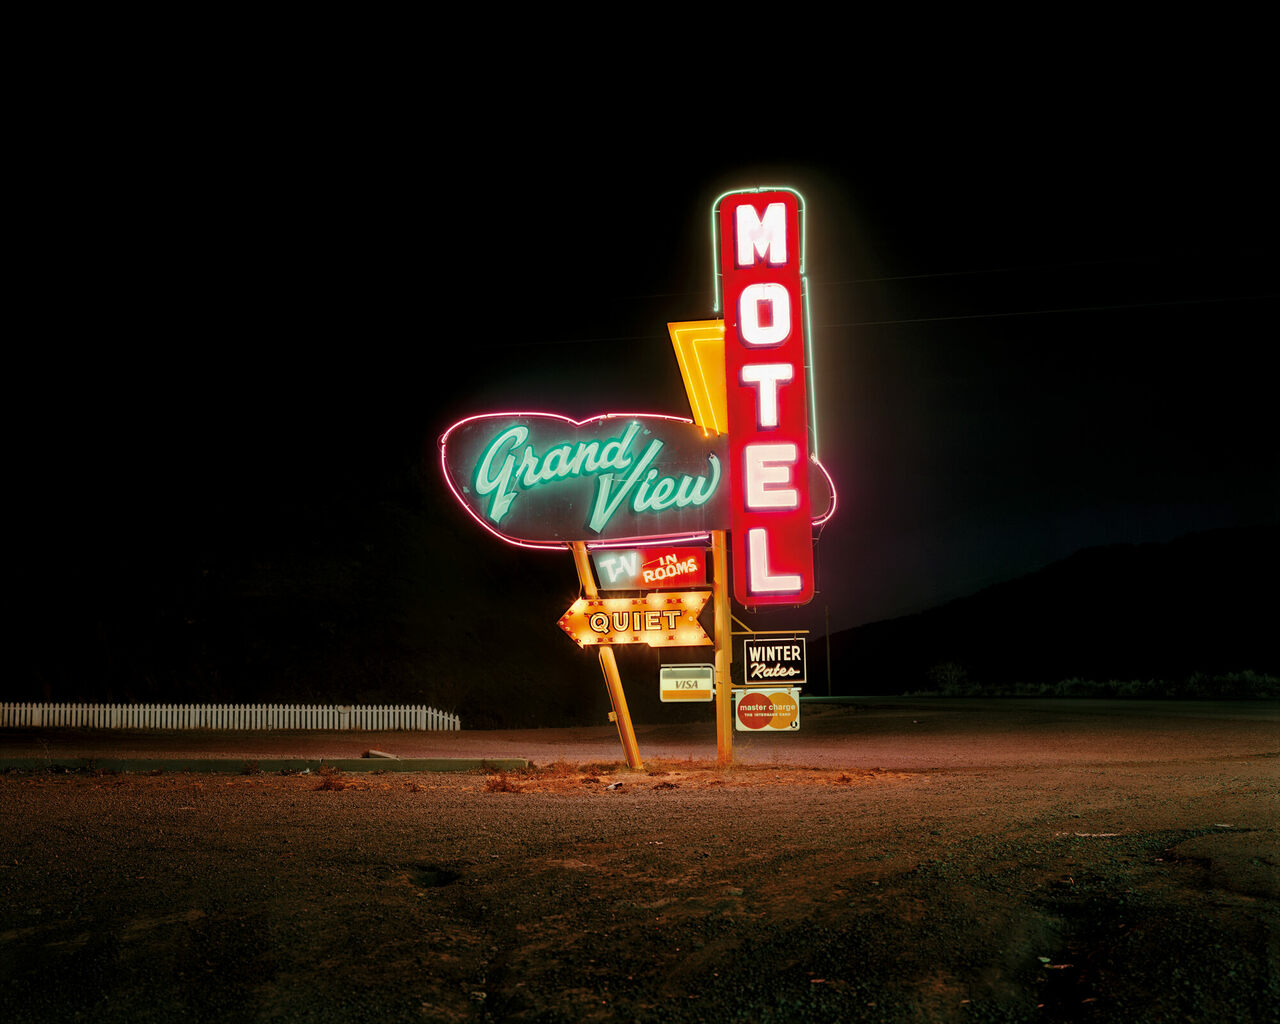 <em>Grand View Motel, Raton, New Mexico; December 18, 1980.</em>